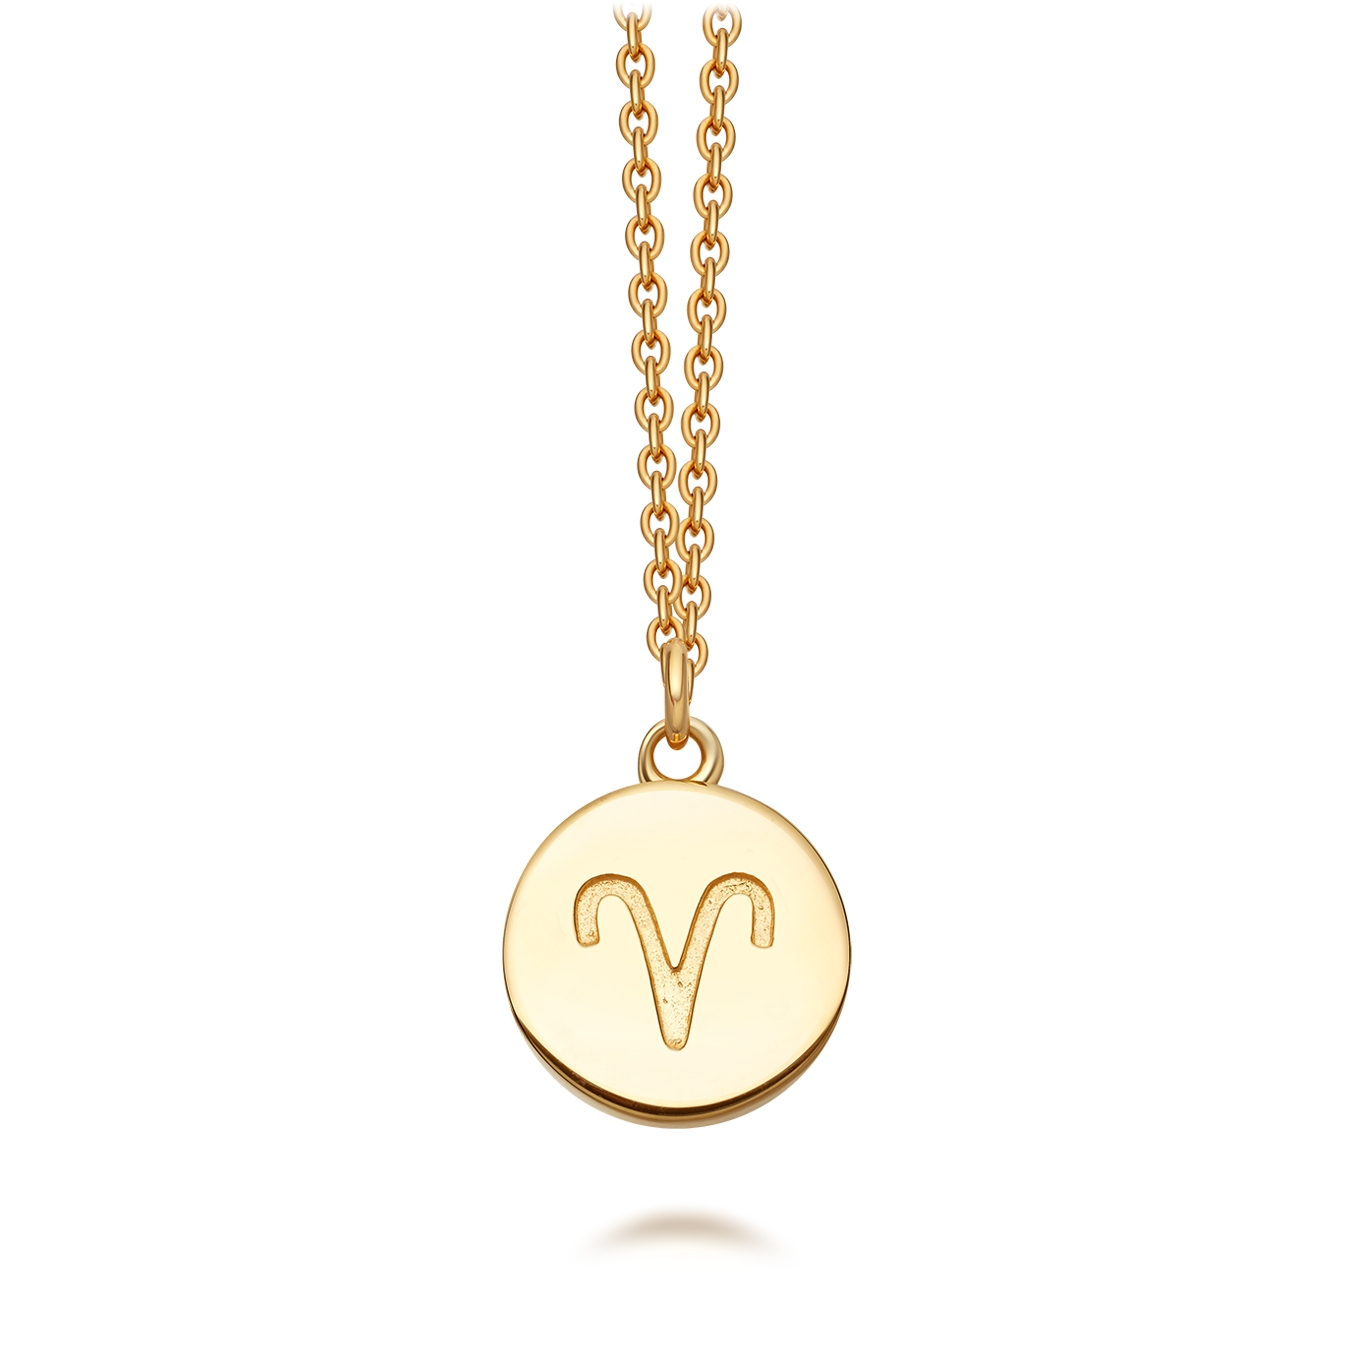 Gold Aries Zodiac Biography Pendant Necklace